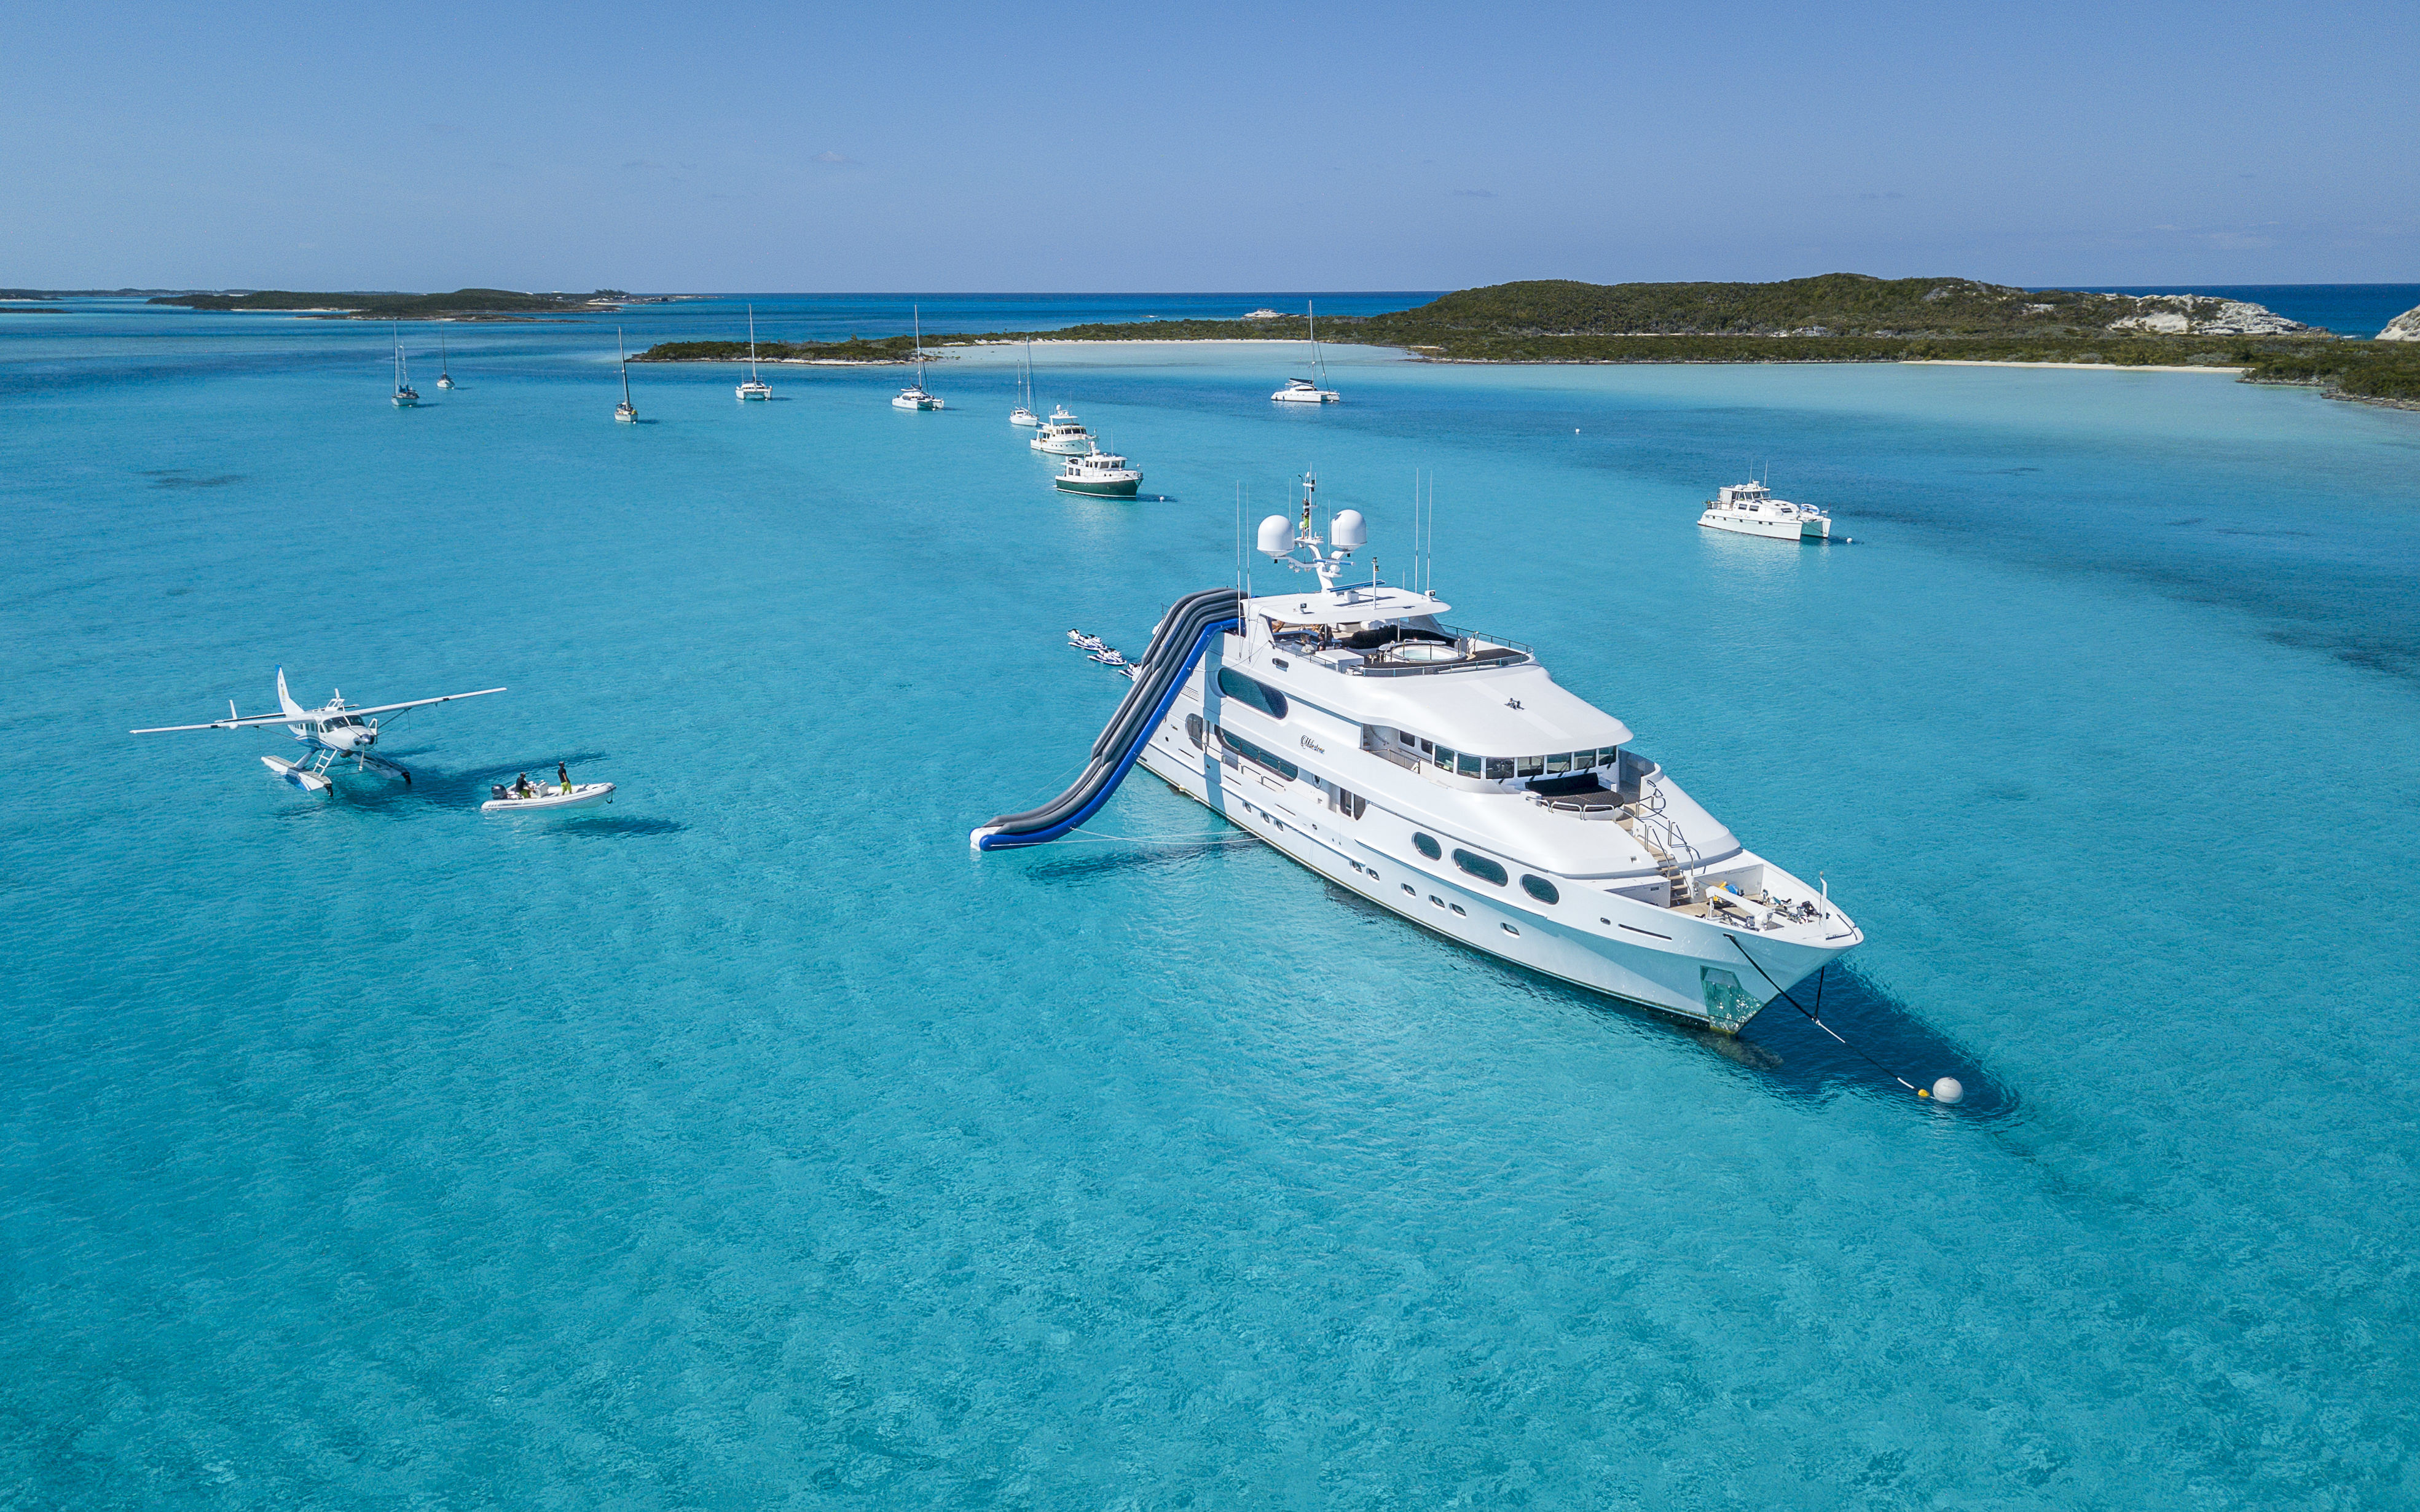 White yachts and sea plane on azure blue waters near islands in the Bahamas.